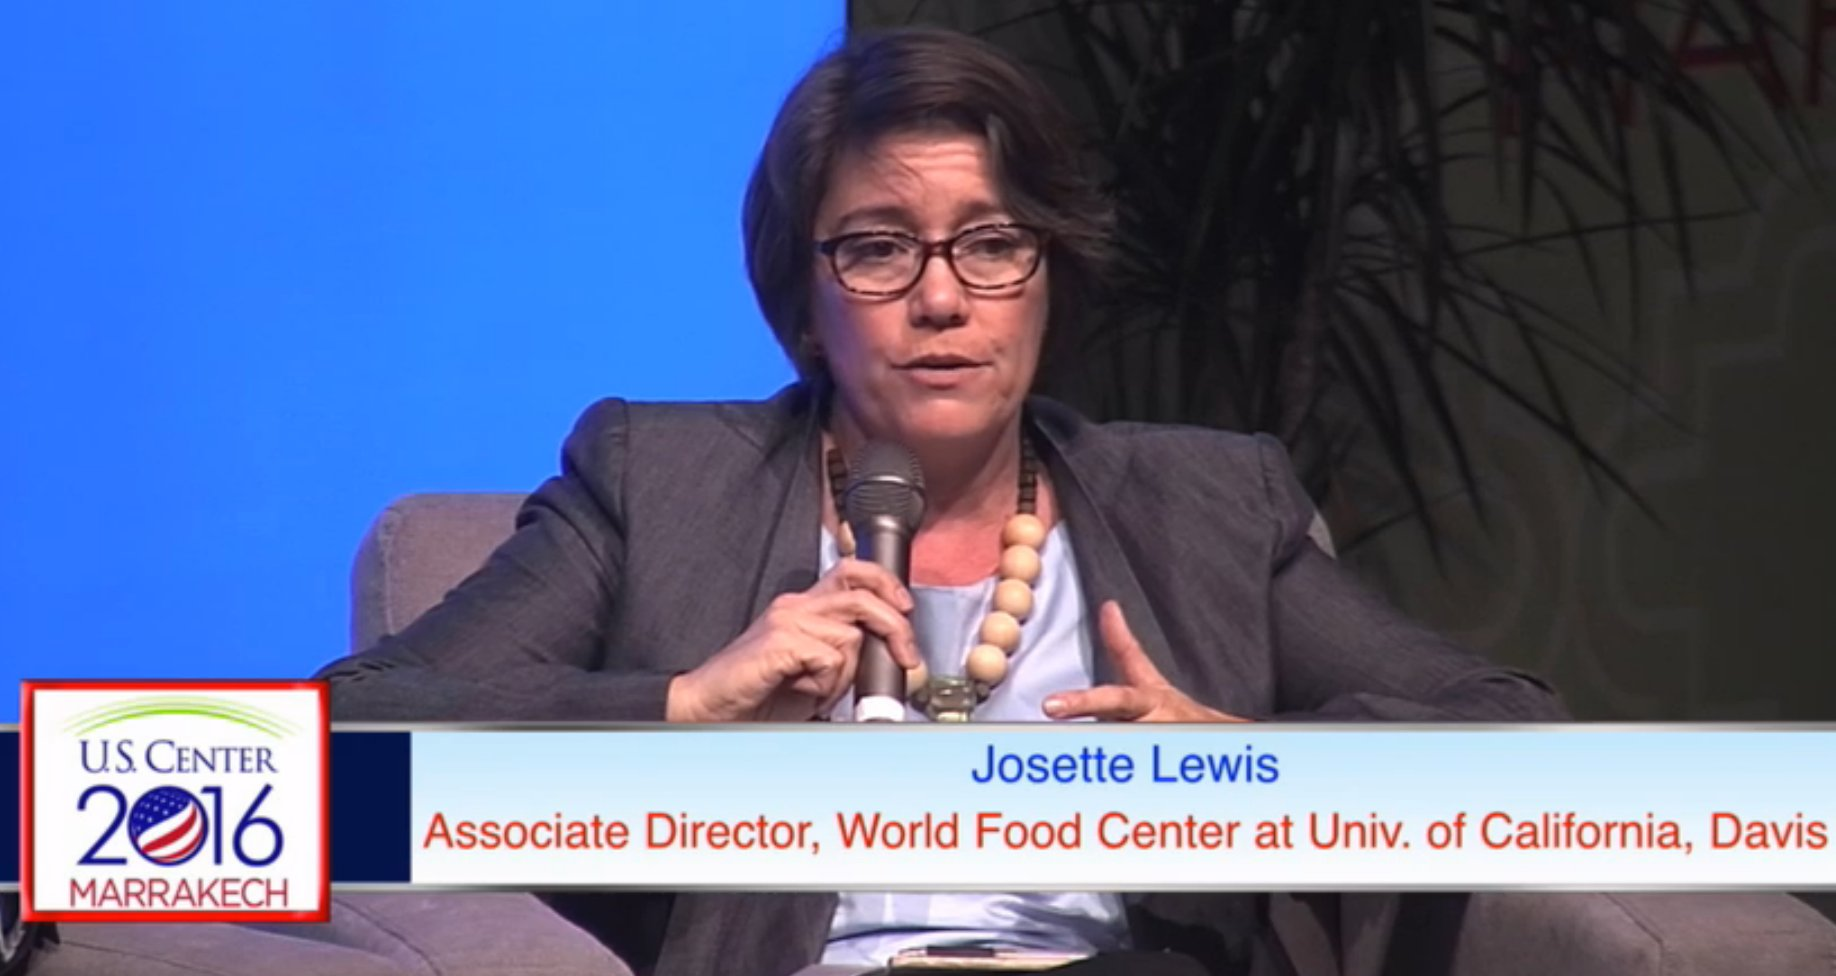 .@ucdavis engages w our own ag sector in CA, also takes those lessons globally to share expertise with other countries -Lewis #COP22 https://t.co/CWtLmEBezQ